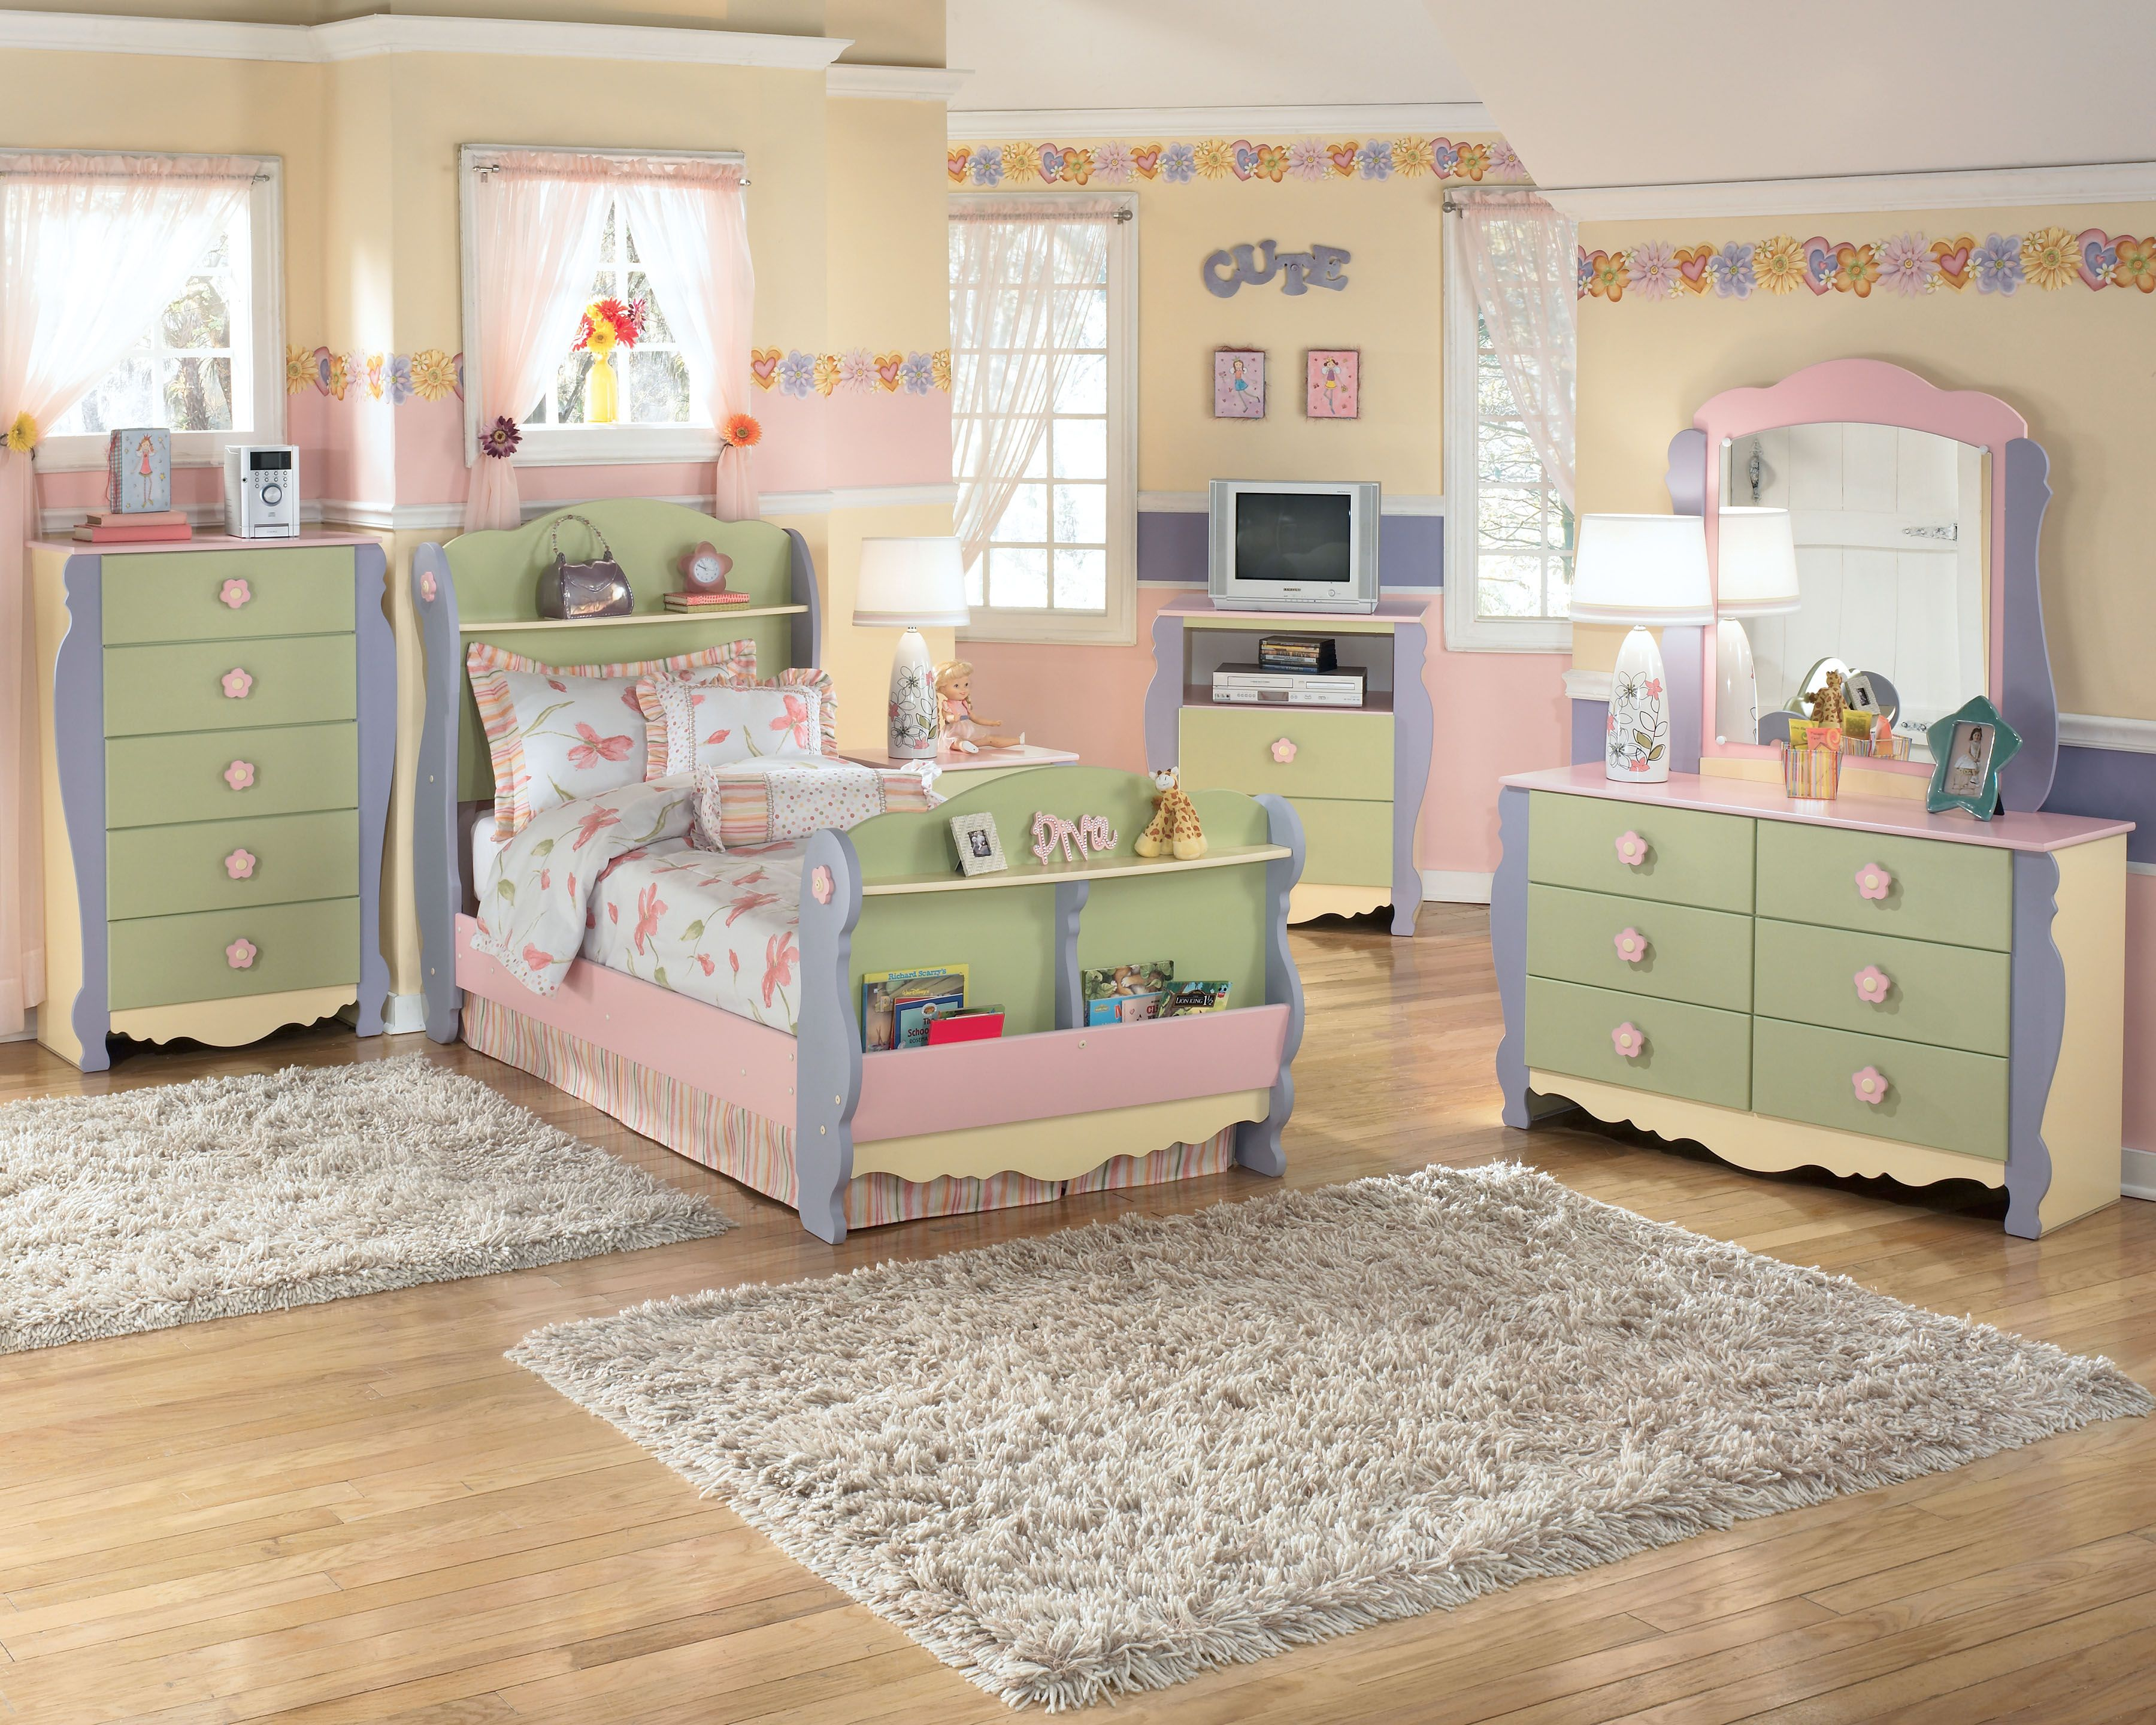 Such A Sweet Ashley Furniture Homestore Bedroom For A Little Girl